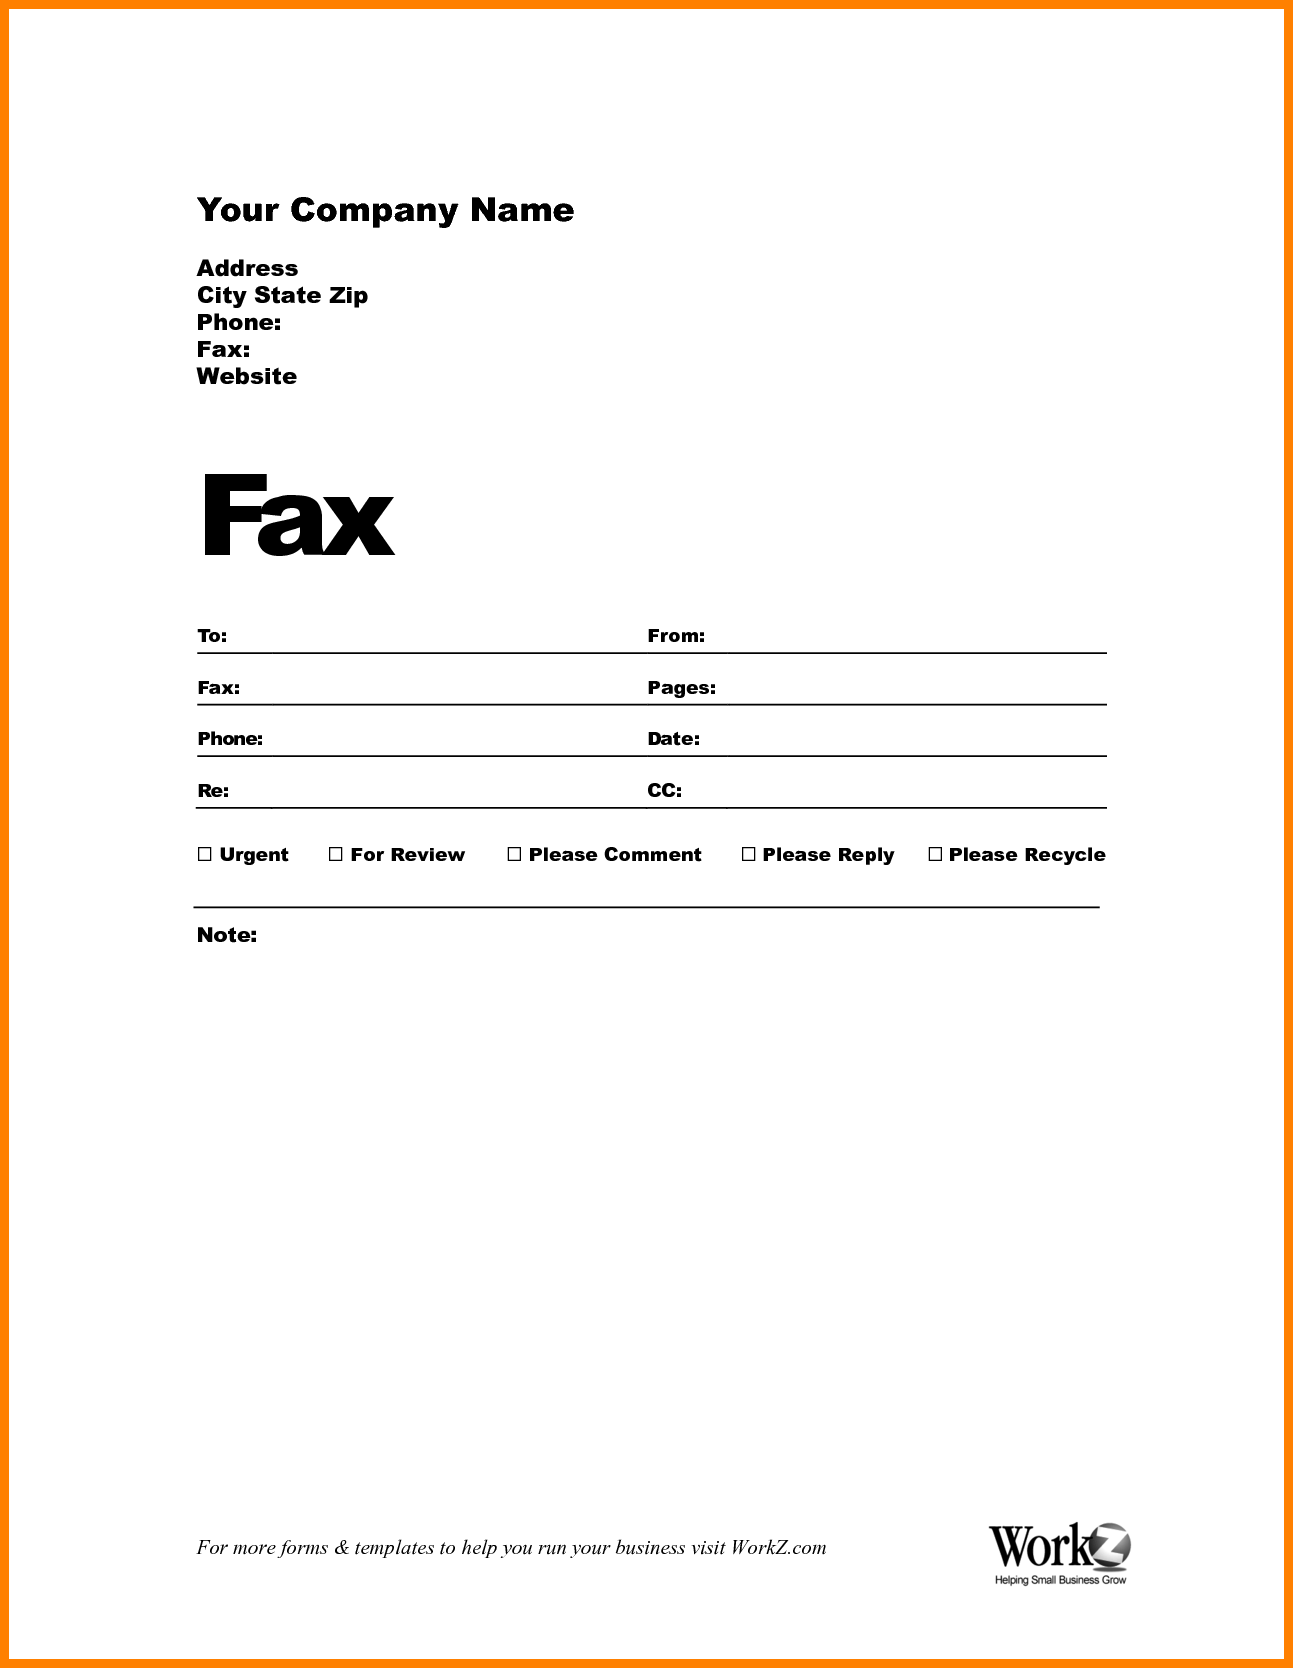 Fax Cover Sheets Templates Microsoft Templates Fax Cover Sheet Cover Letter Templates  News To .